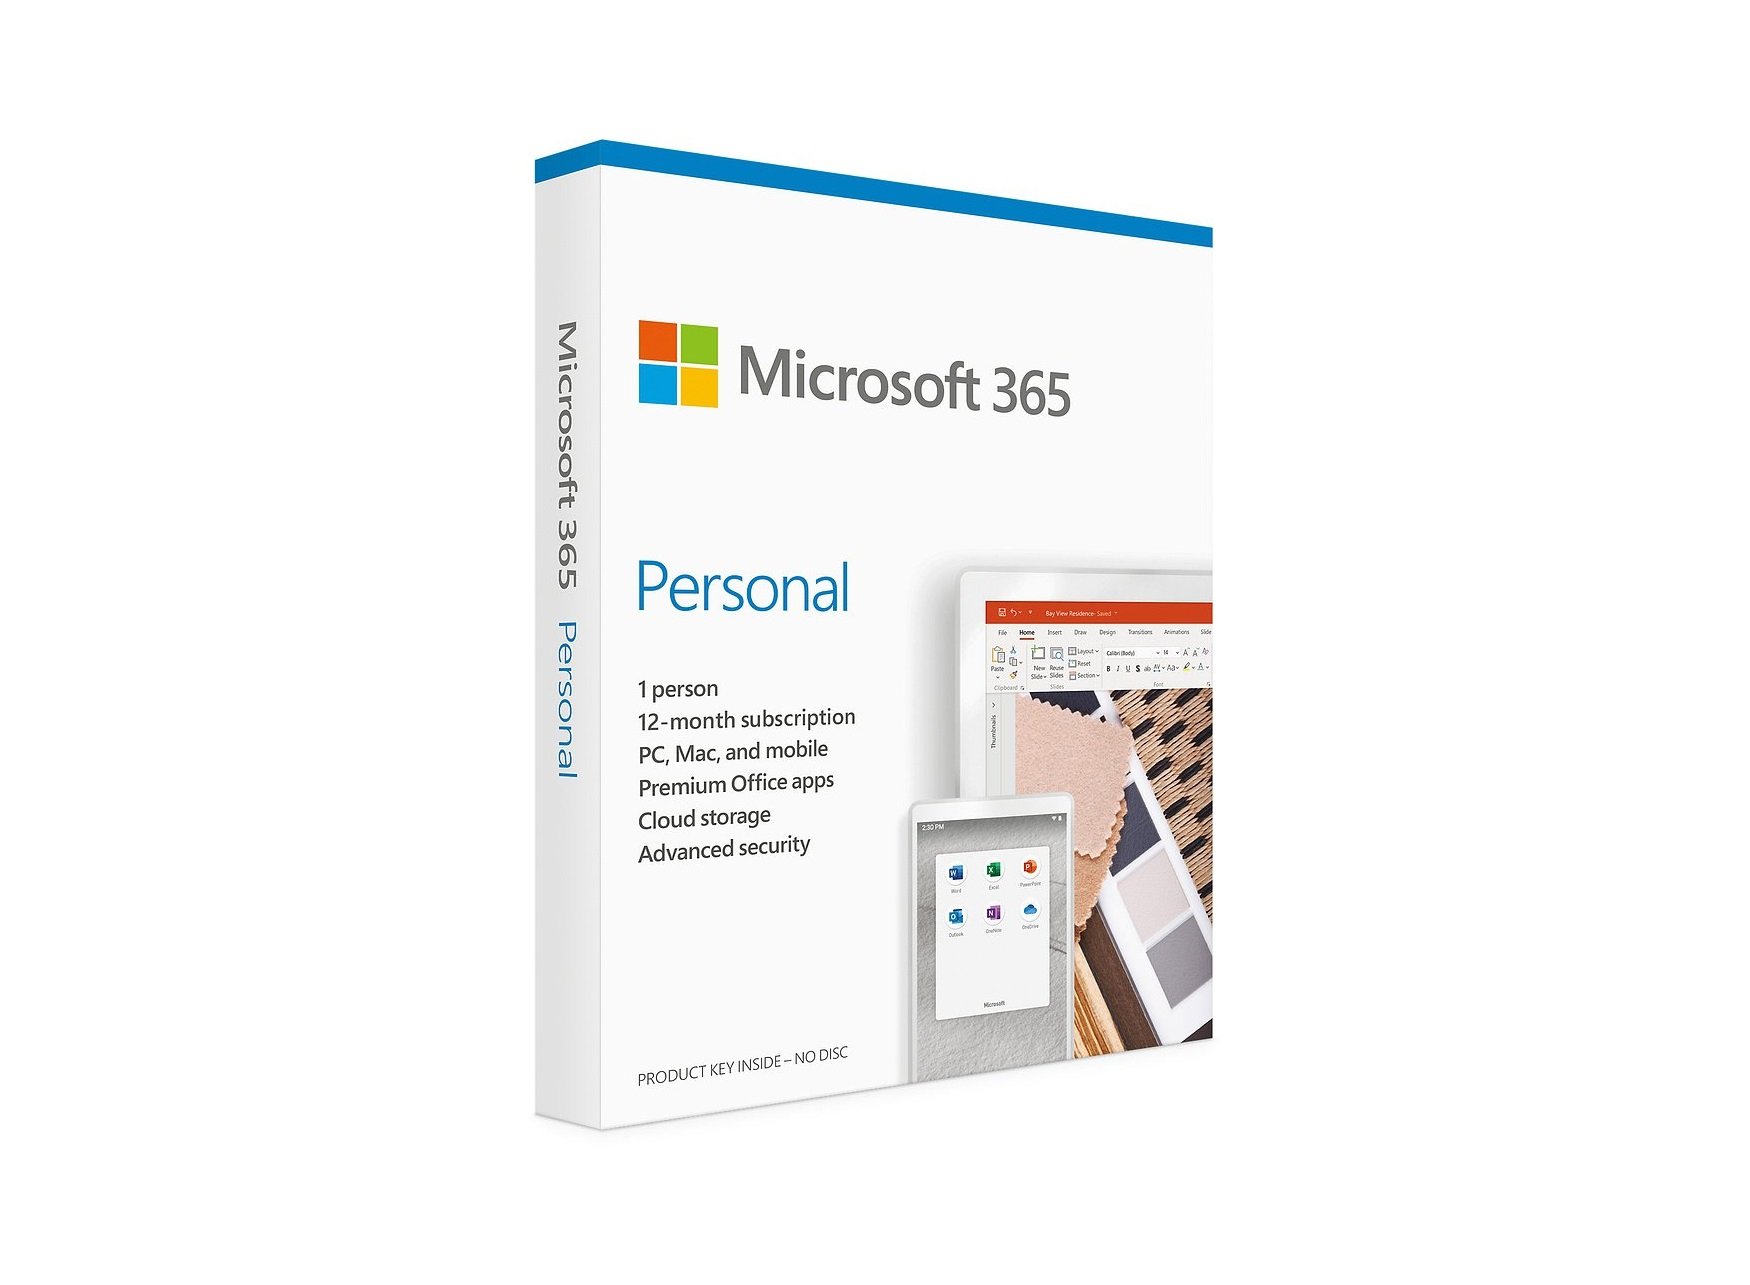 HP Microsoft 365 Personal 12 month 1 license(s) 1 year(s)